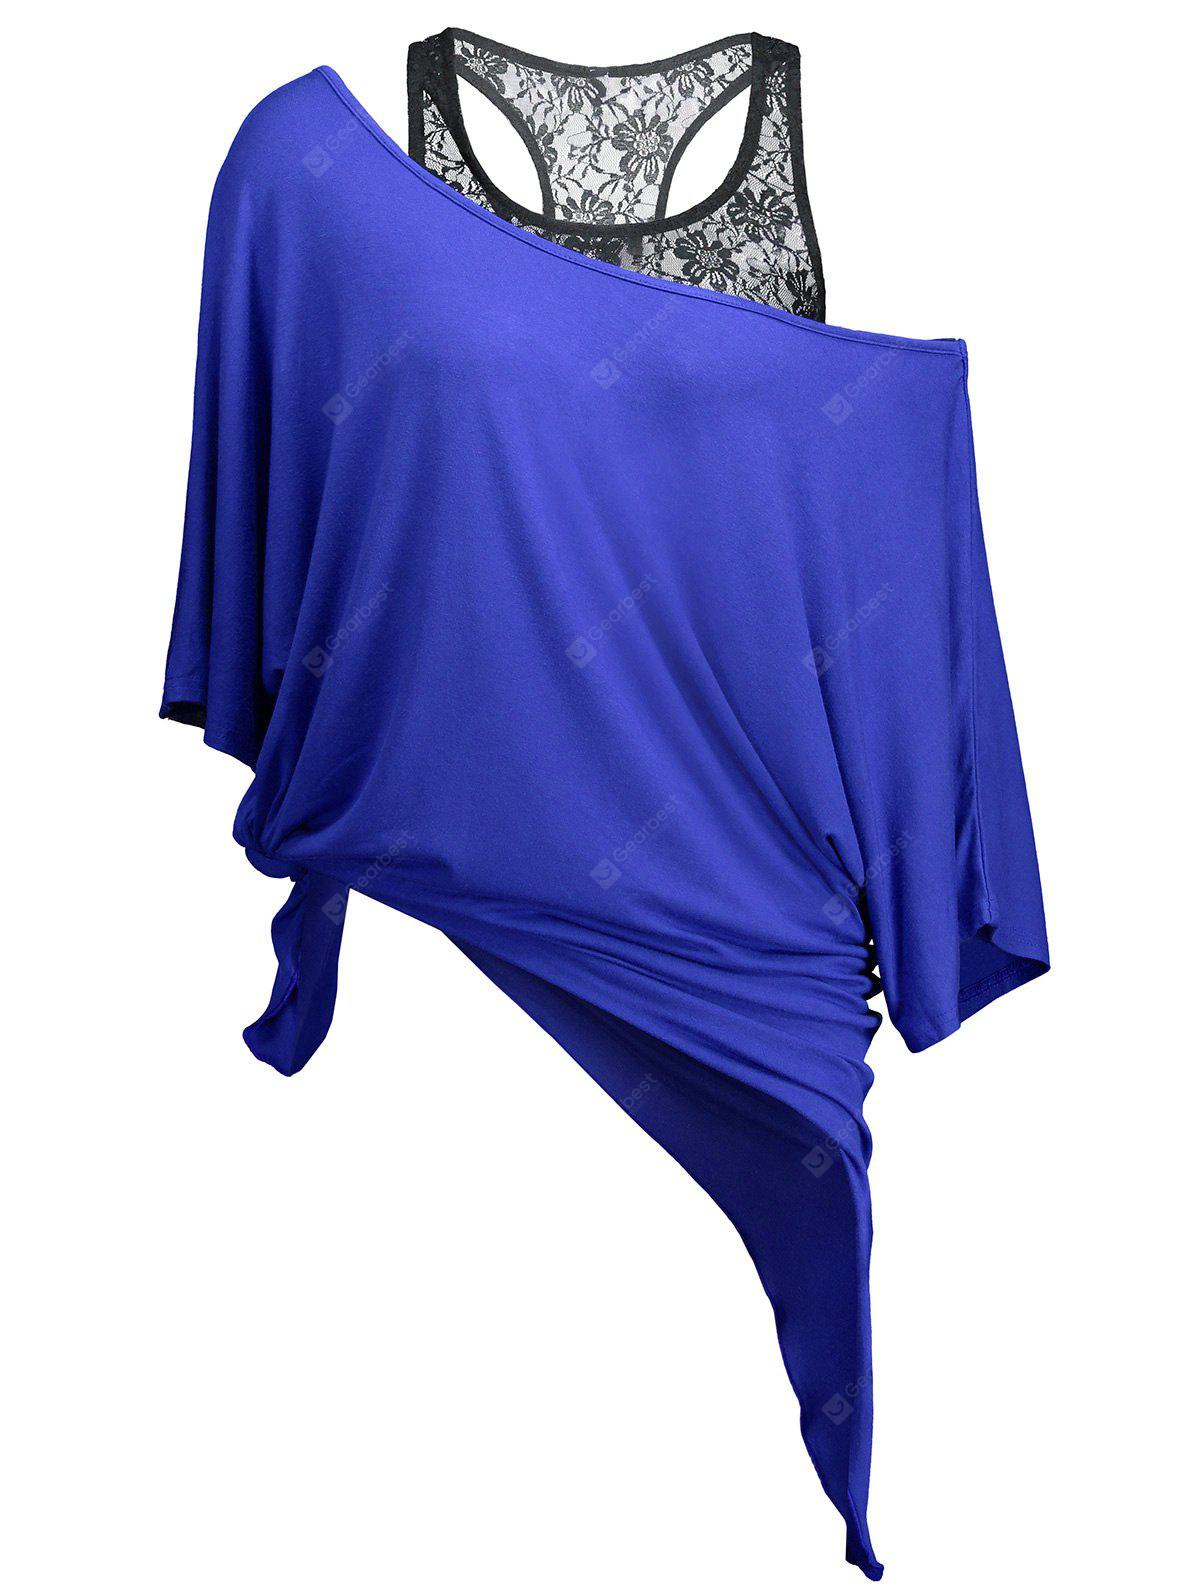 BLUE XL Handkerchief Batwing T-Shirt with Lace Tank Top